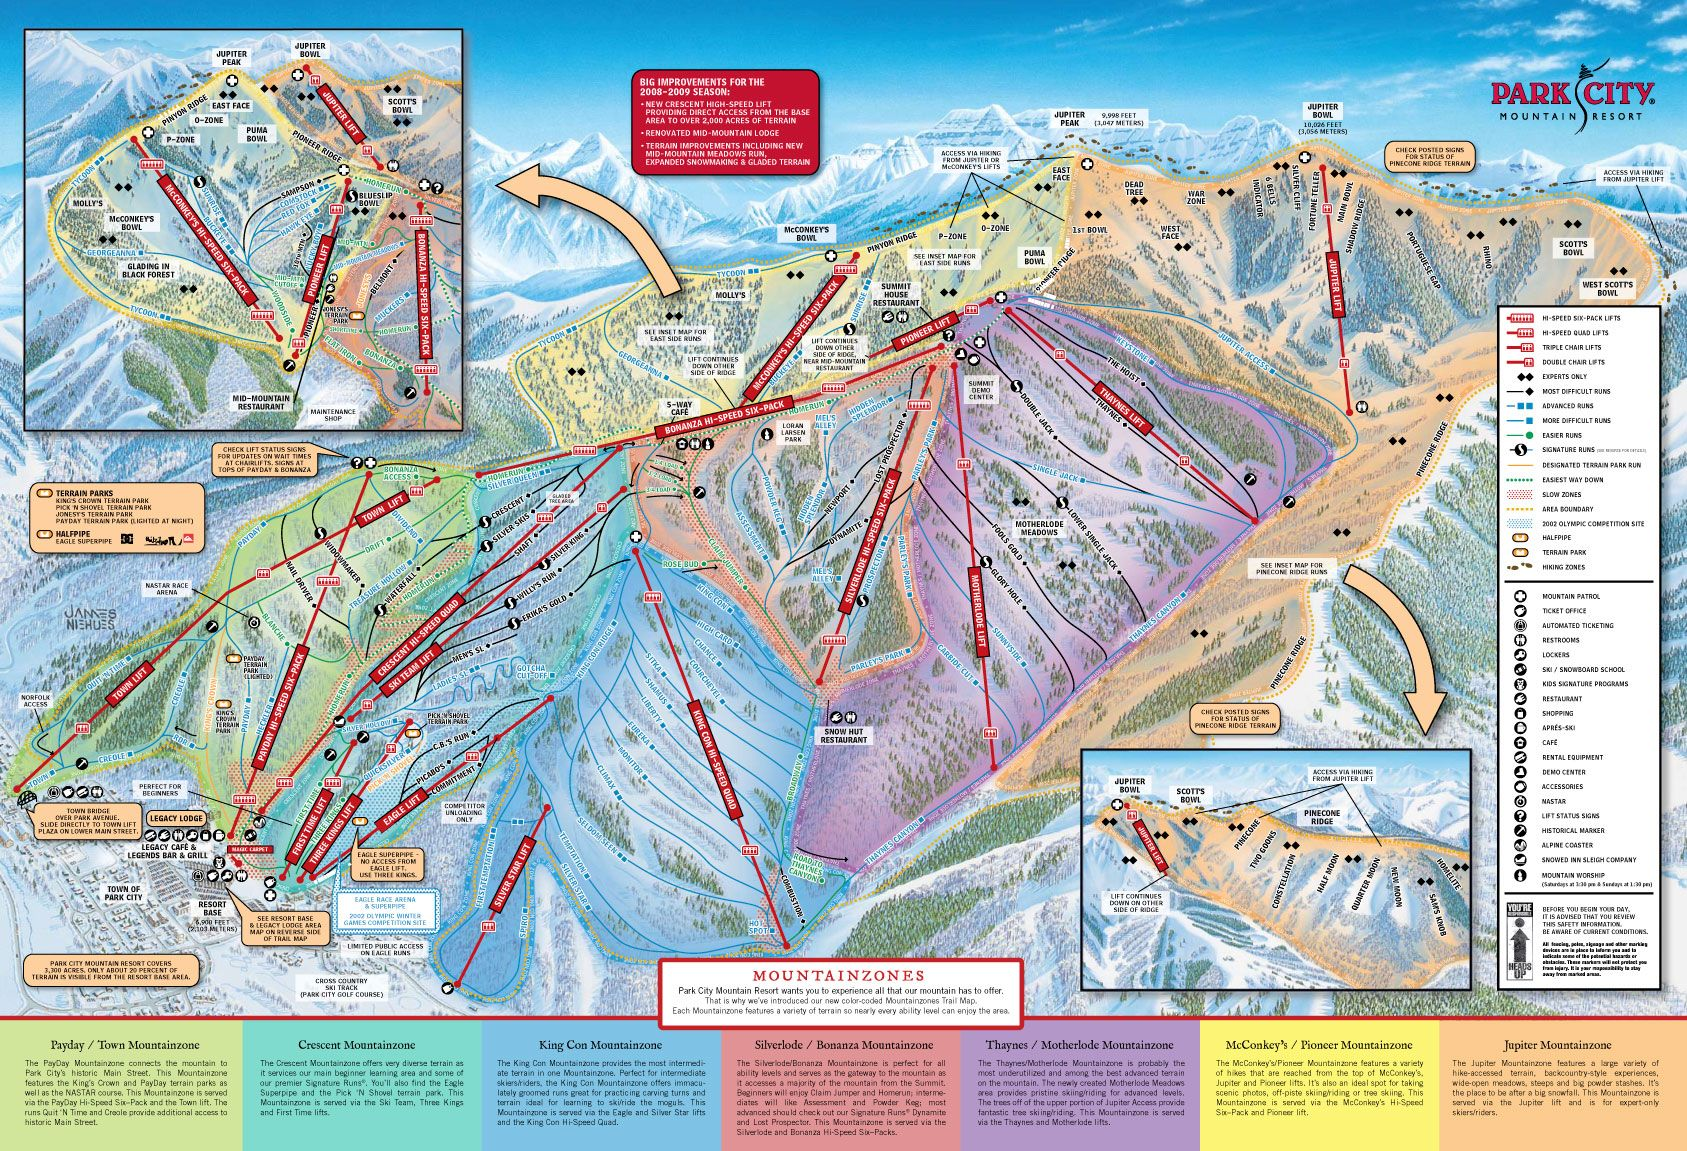 Canyons Trail Map Park City Utah Park City Mountain Park City Skiing Park City Trail Map